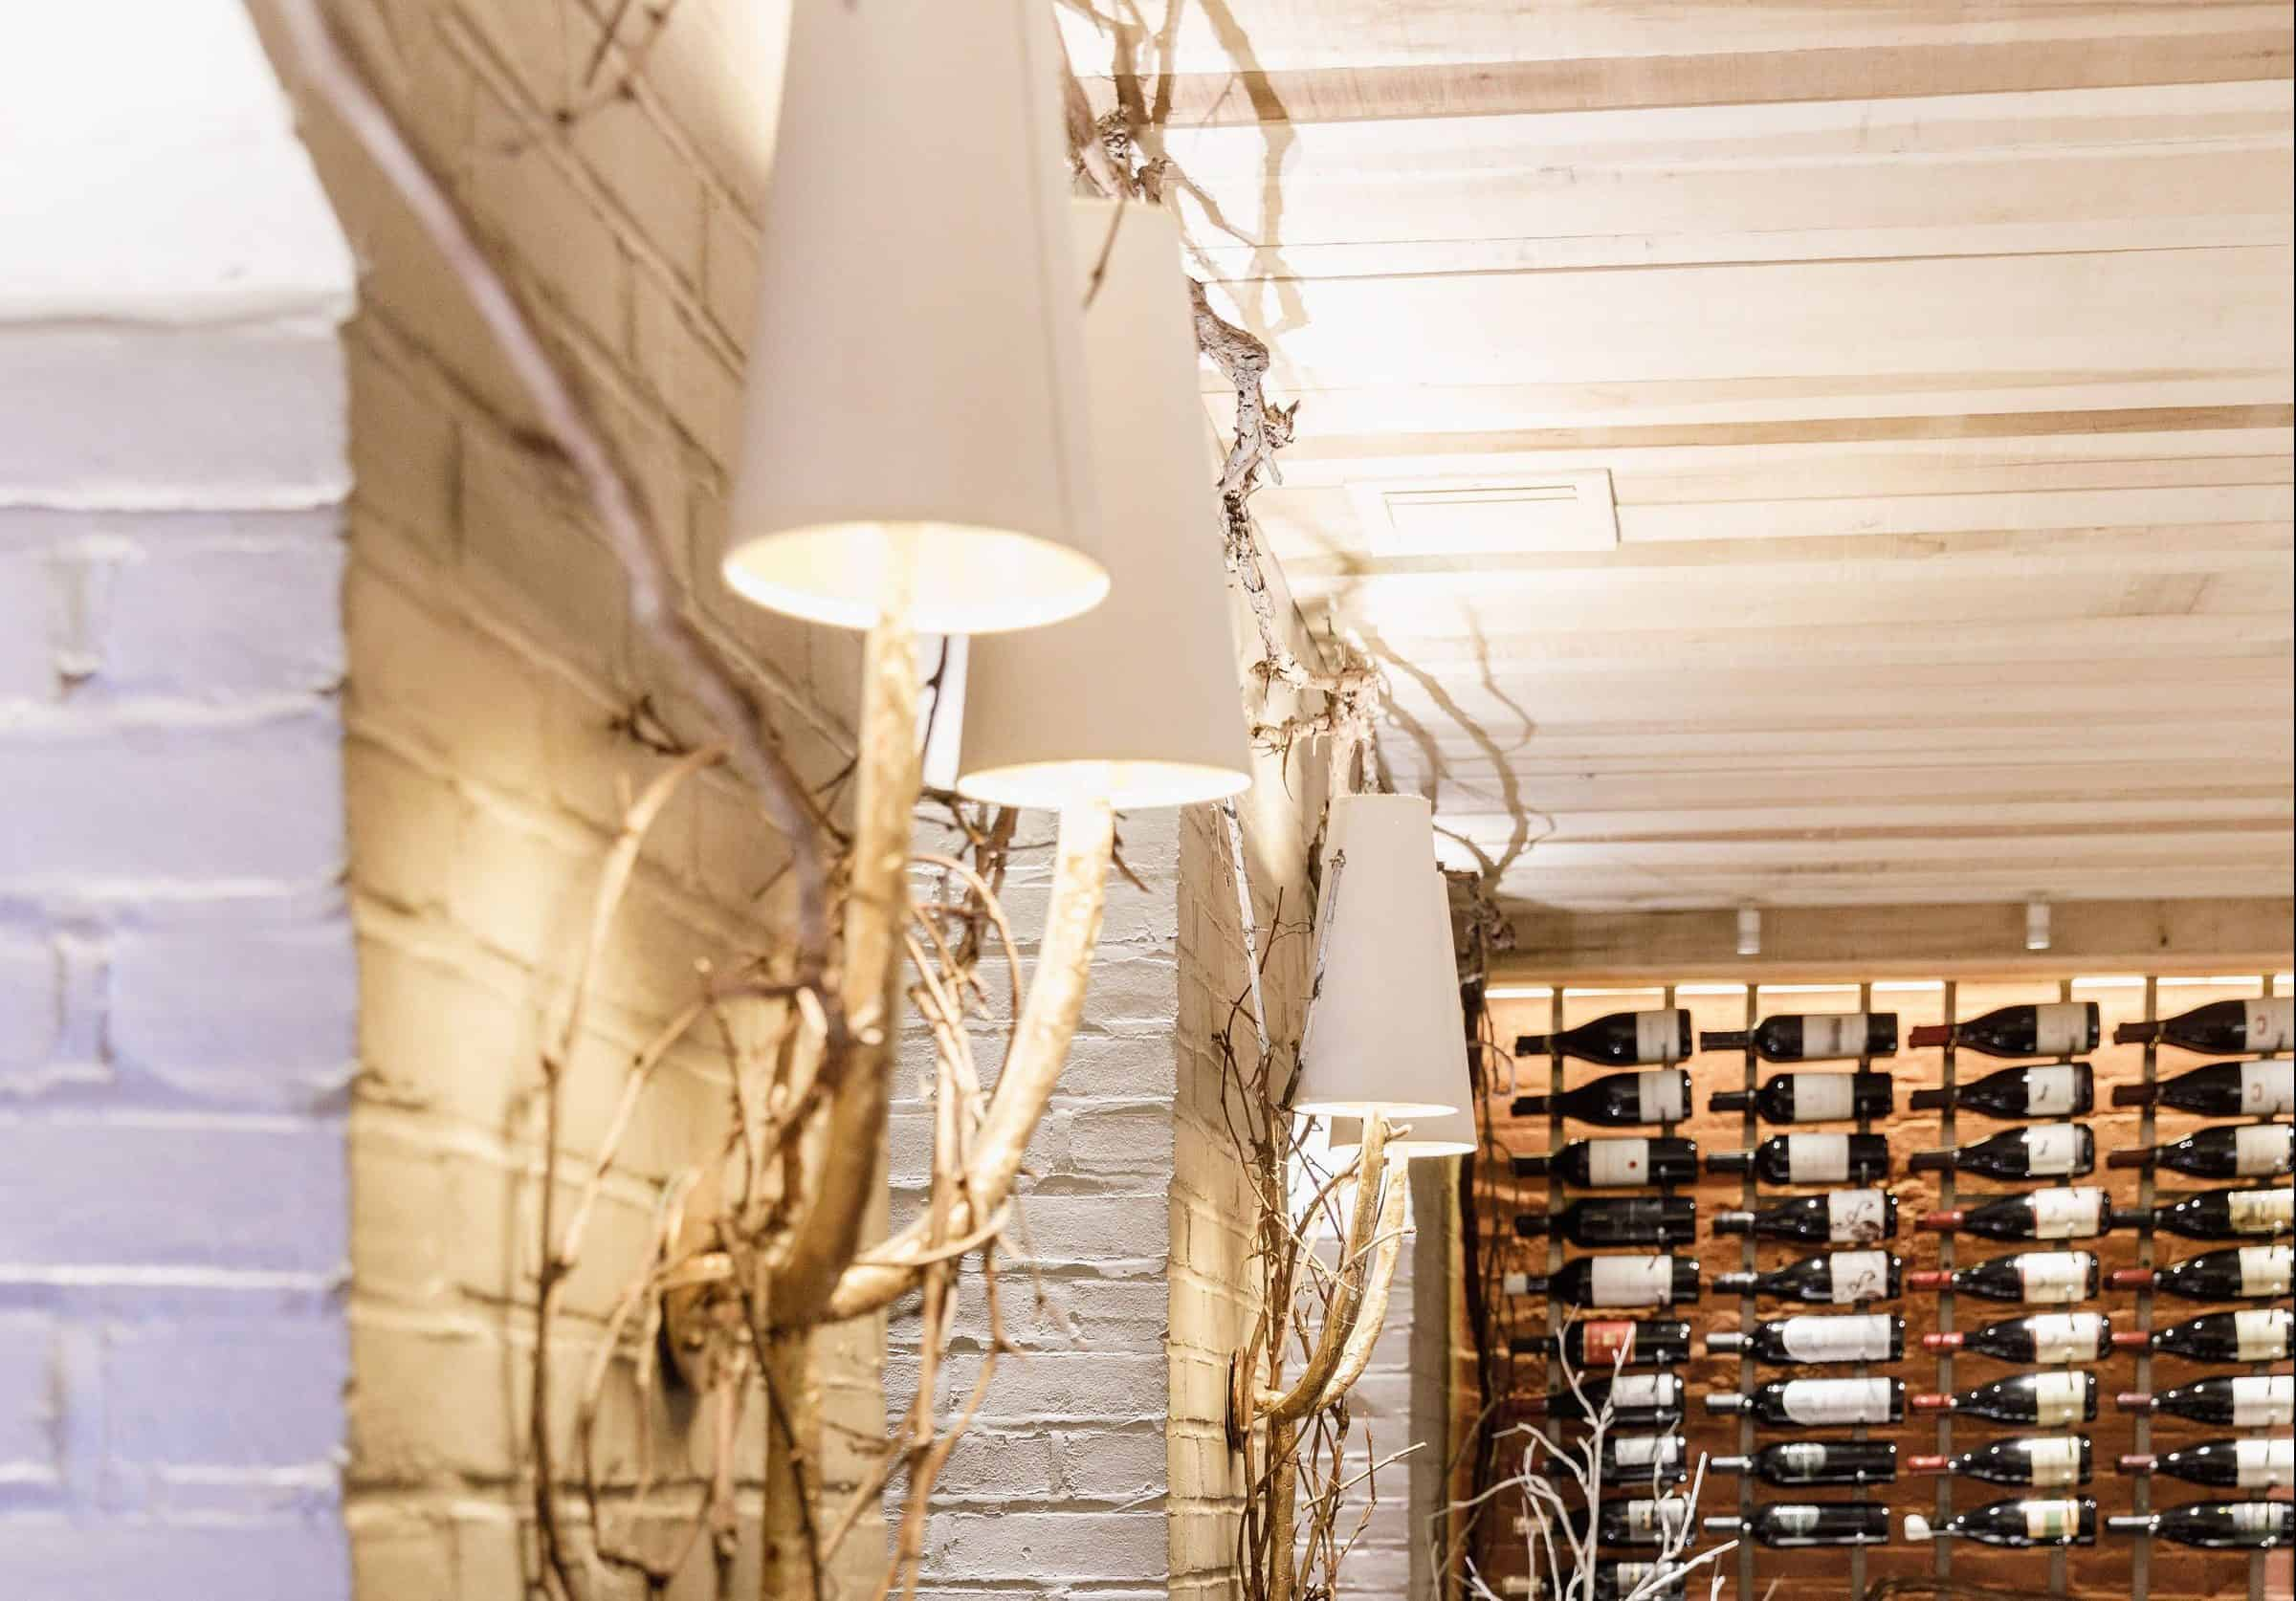 Wall sconces with rustic vines and wine racks in the Robert Parker Wine Cellar at Magdalena Restaurant.